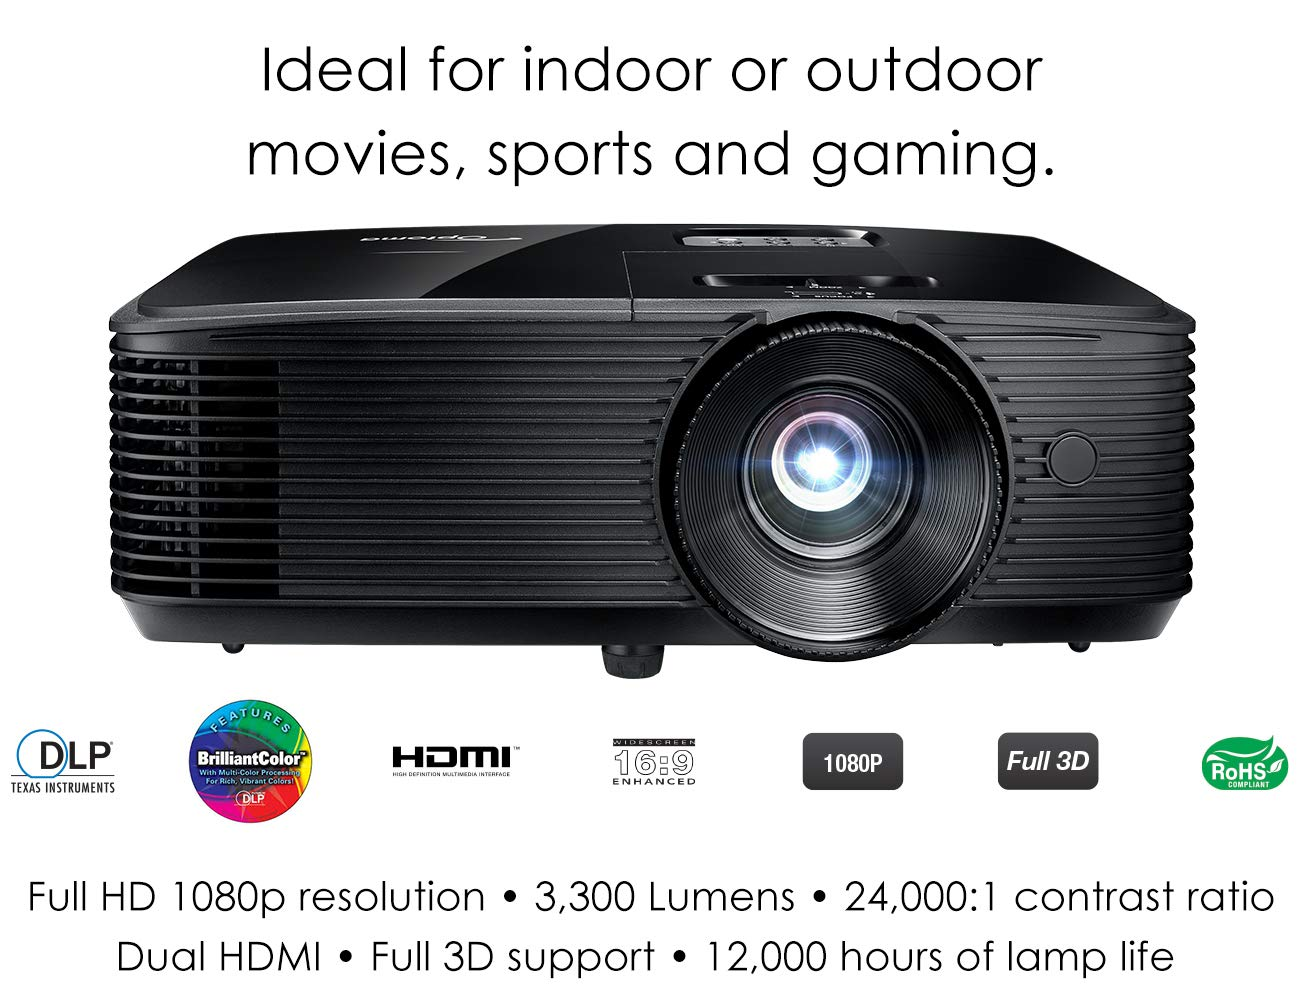 Optoma HD243X 1080p Projector for Movies and Gaming, Super Bright 3300 Lumens, Long 12000h Lamp Life, 3D Support, Easy Setup with Zoom and Keystone Adjustment by Optoma